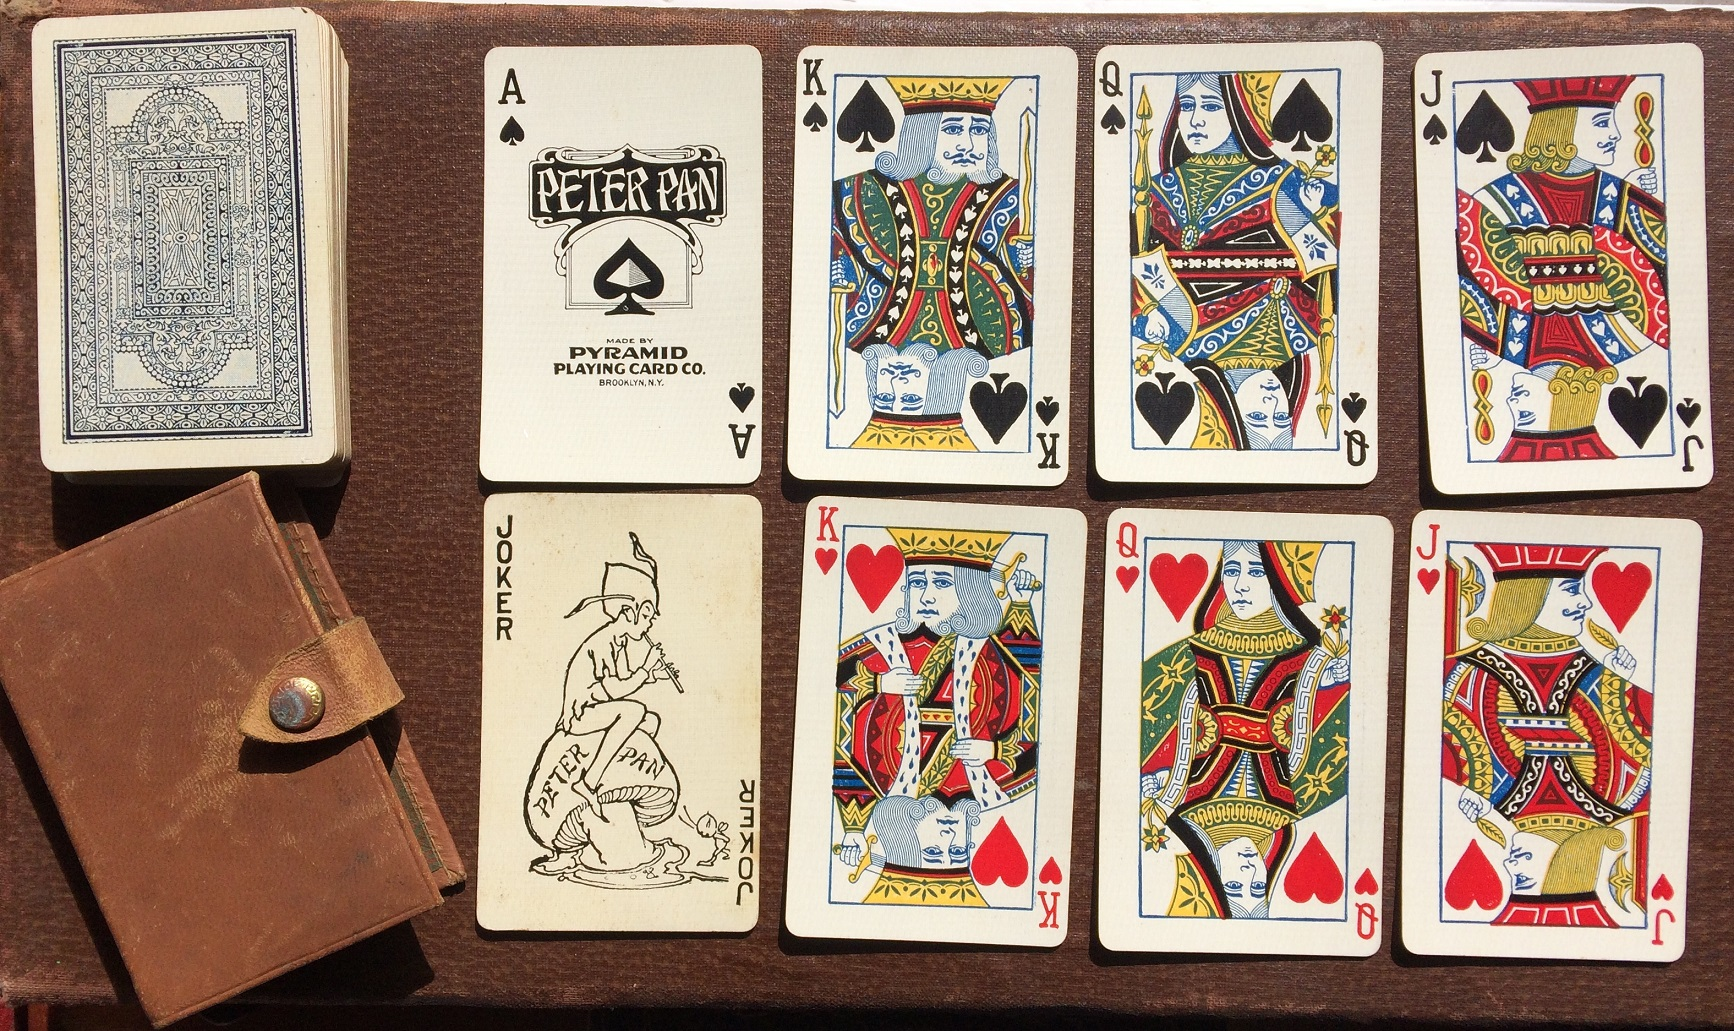 Pyramid Playing Card Co. - Peter Pan.JPG